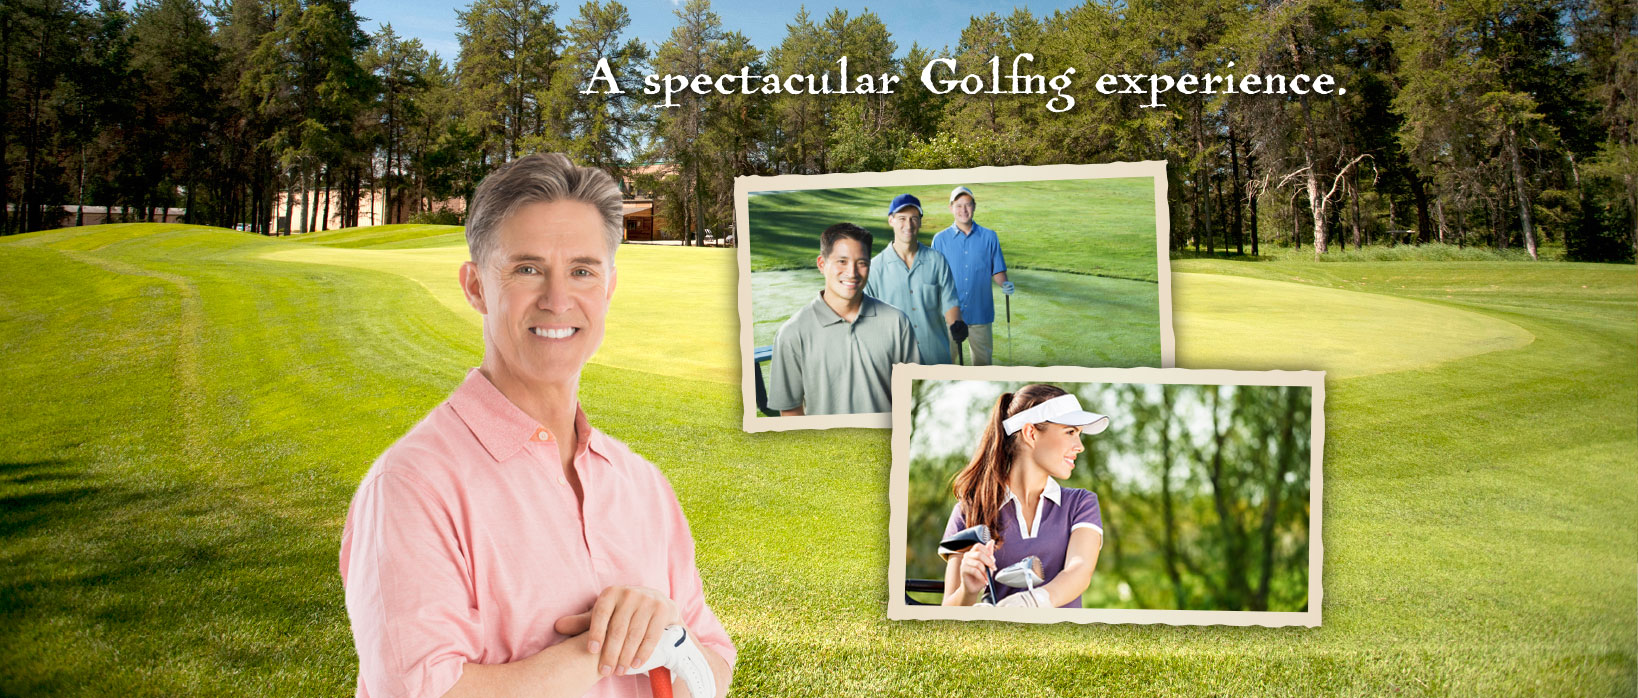 A spectacular Golfng experience.